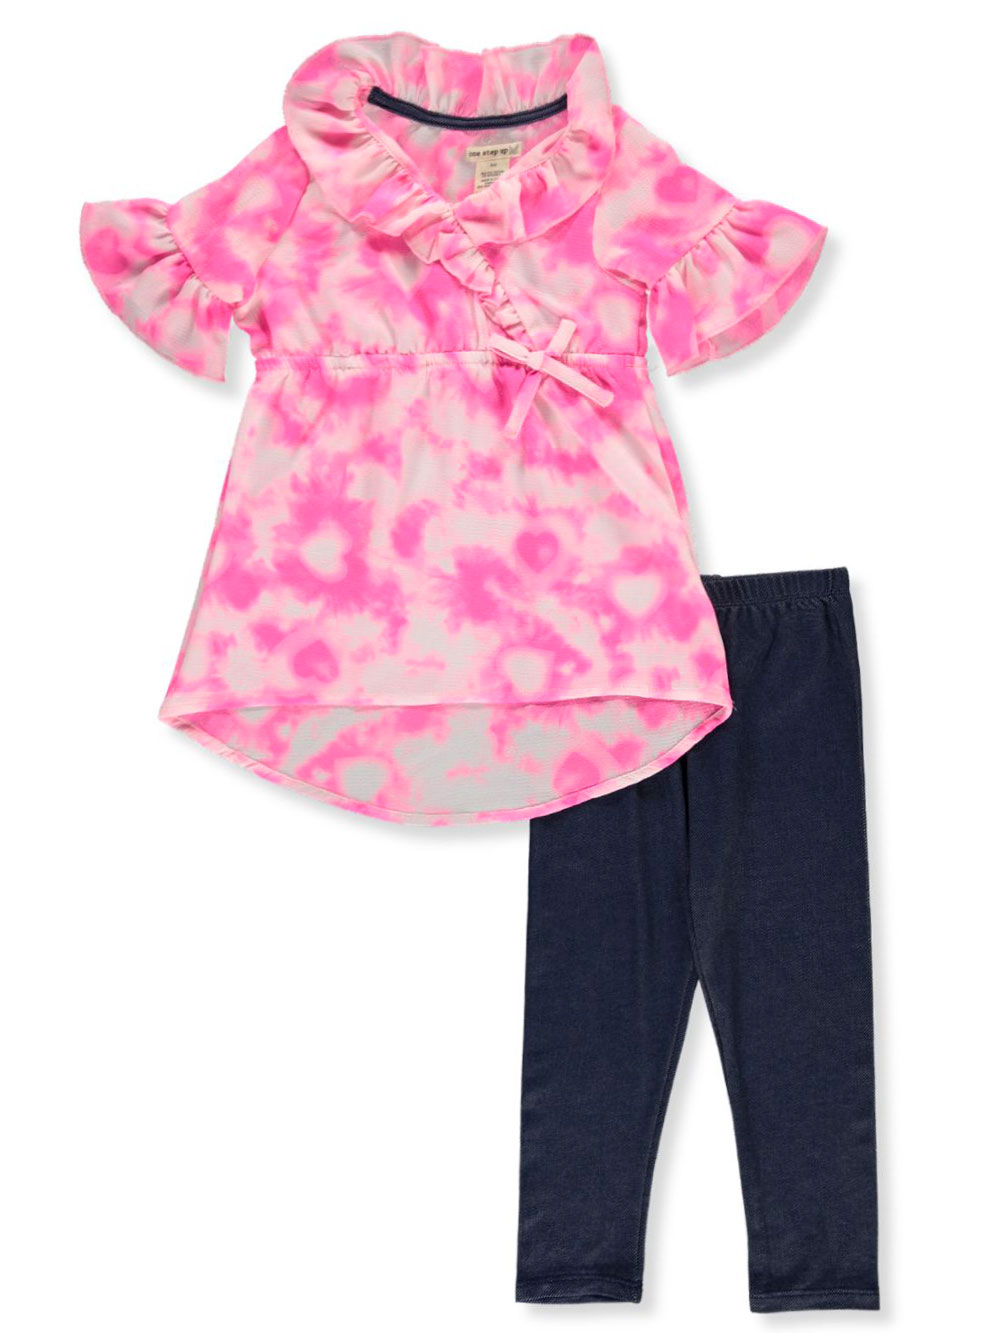 Butterfly 2-Piece Leggings Set Outfit